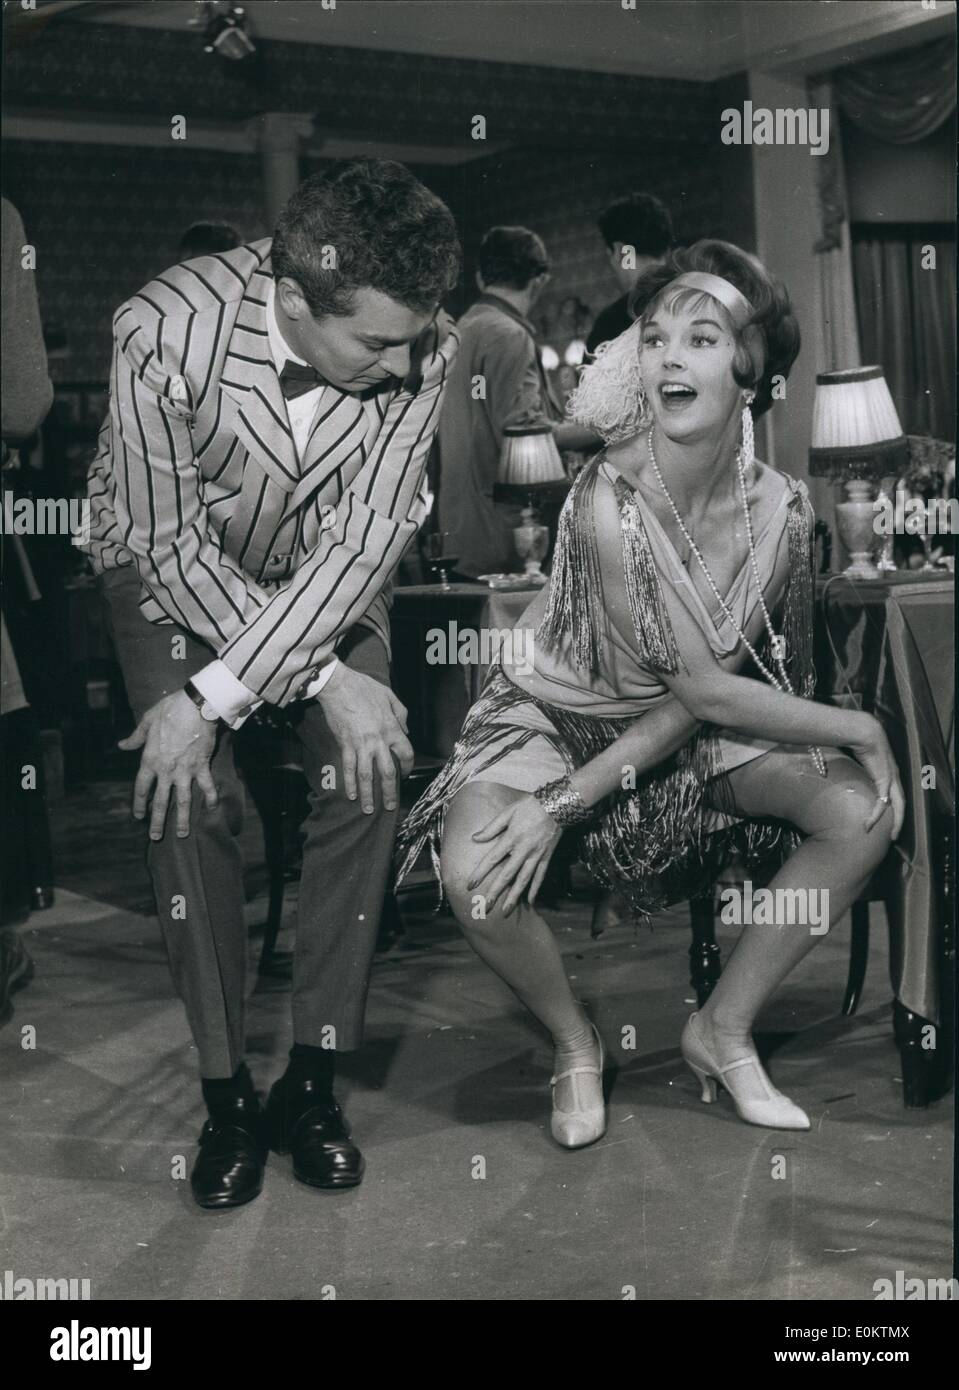 Jan 1, 1950 - Jive With The Stars: Actress Dawn Adams And Sydney Chaplin Have A Private Jive Session At Walton Studios Stock Photo